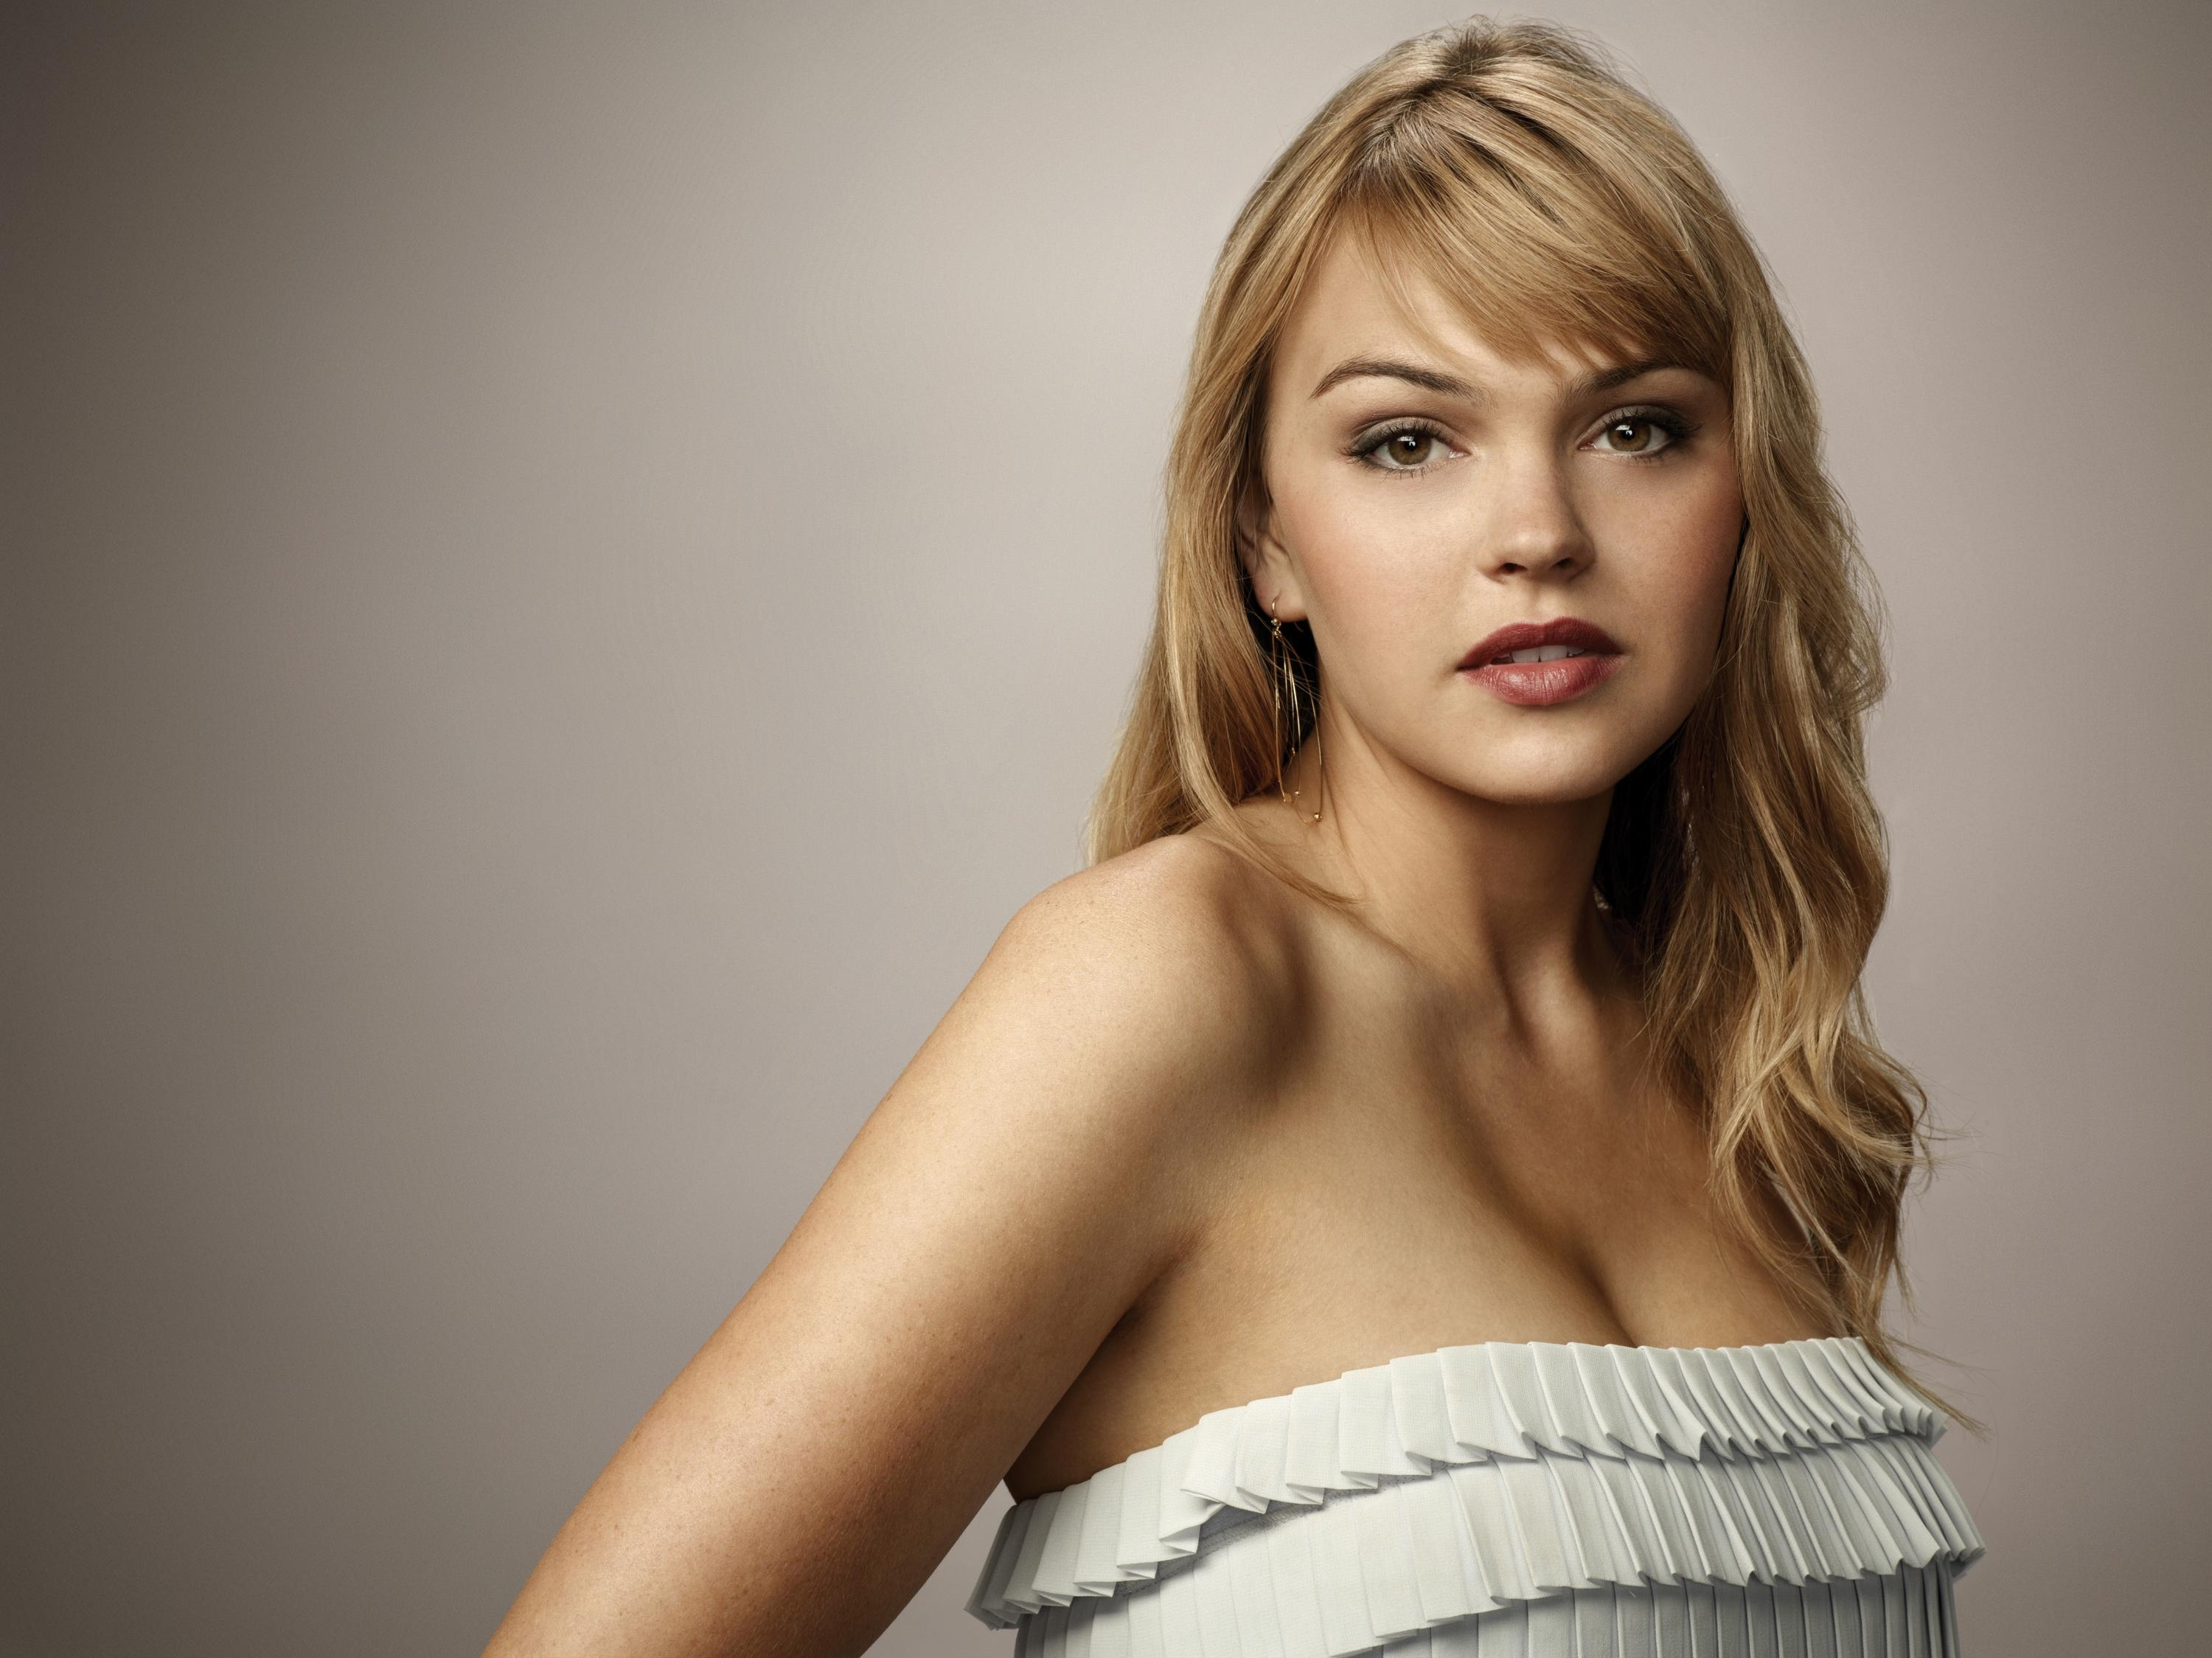 13 aimee teegarden hd wallpapers | background images - wallpaper abyss